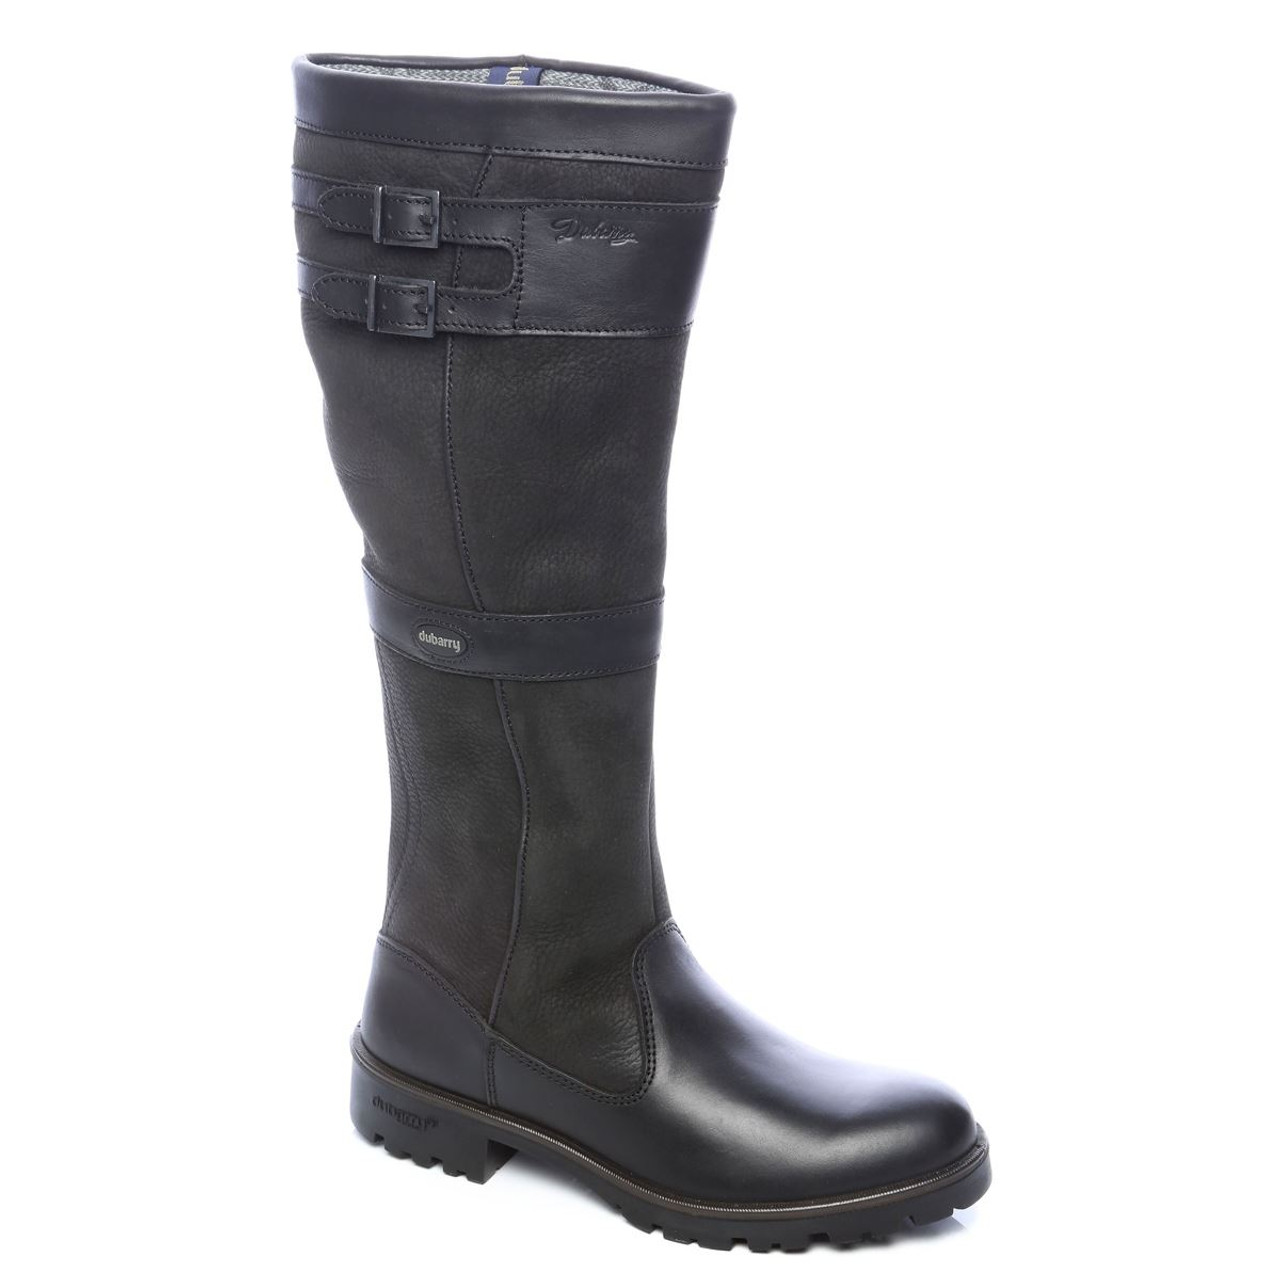 Dubarry Longford Boots in Black